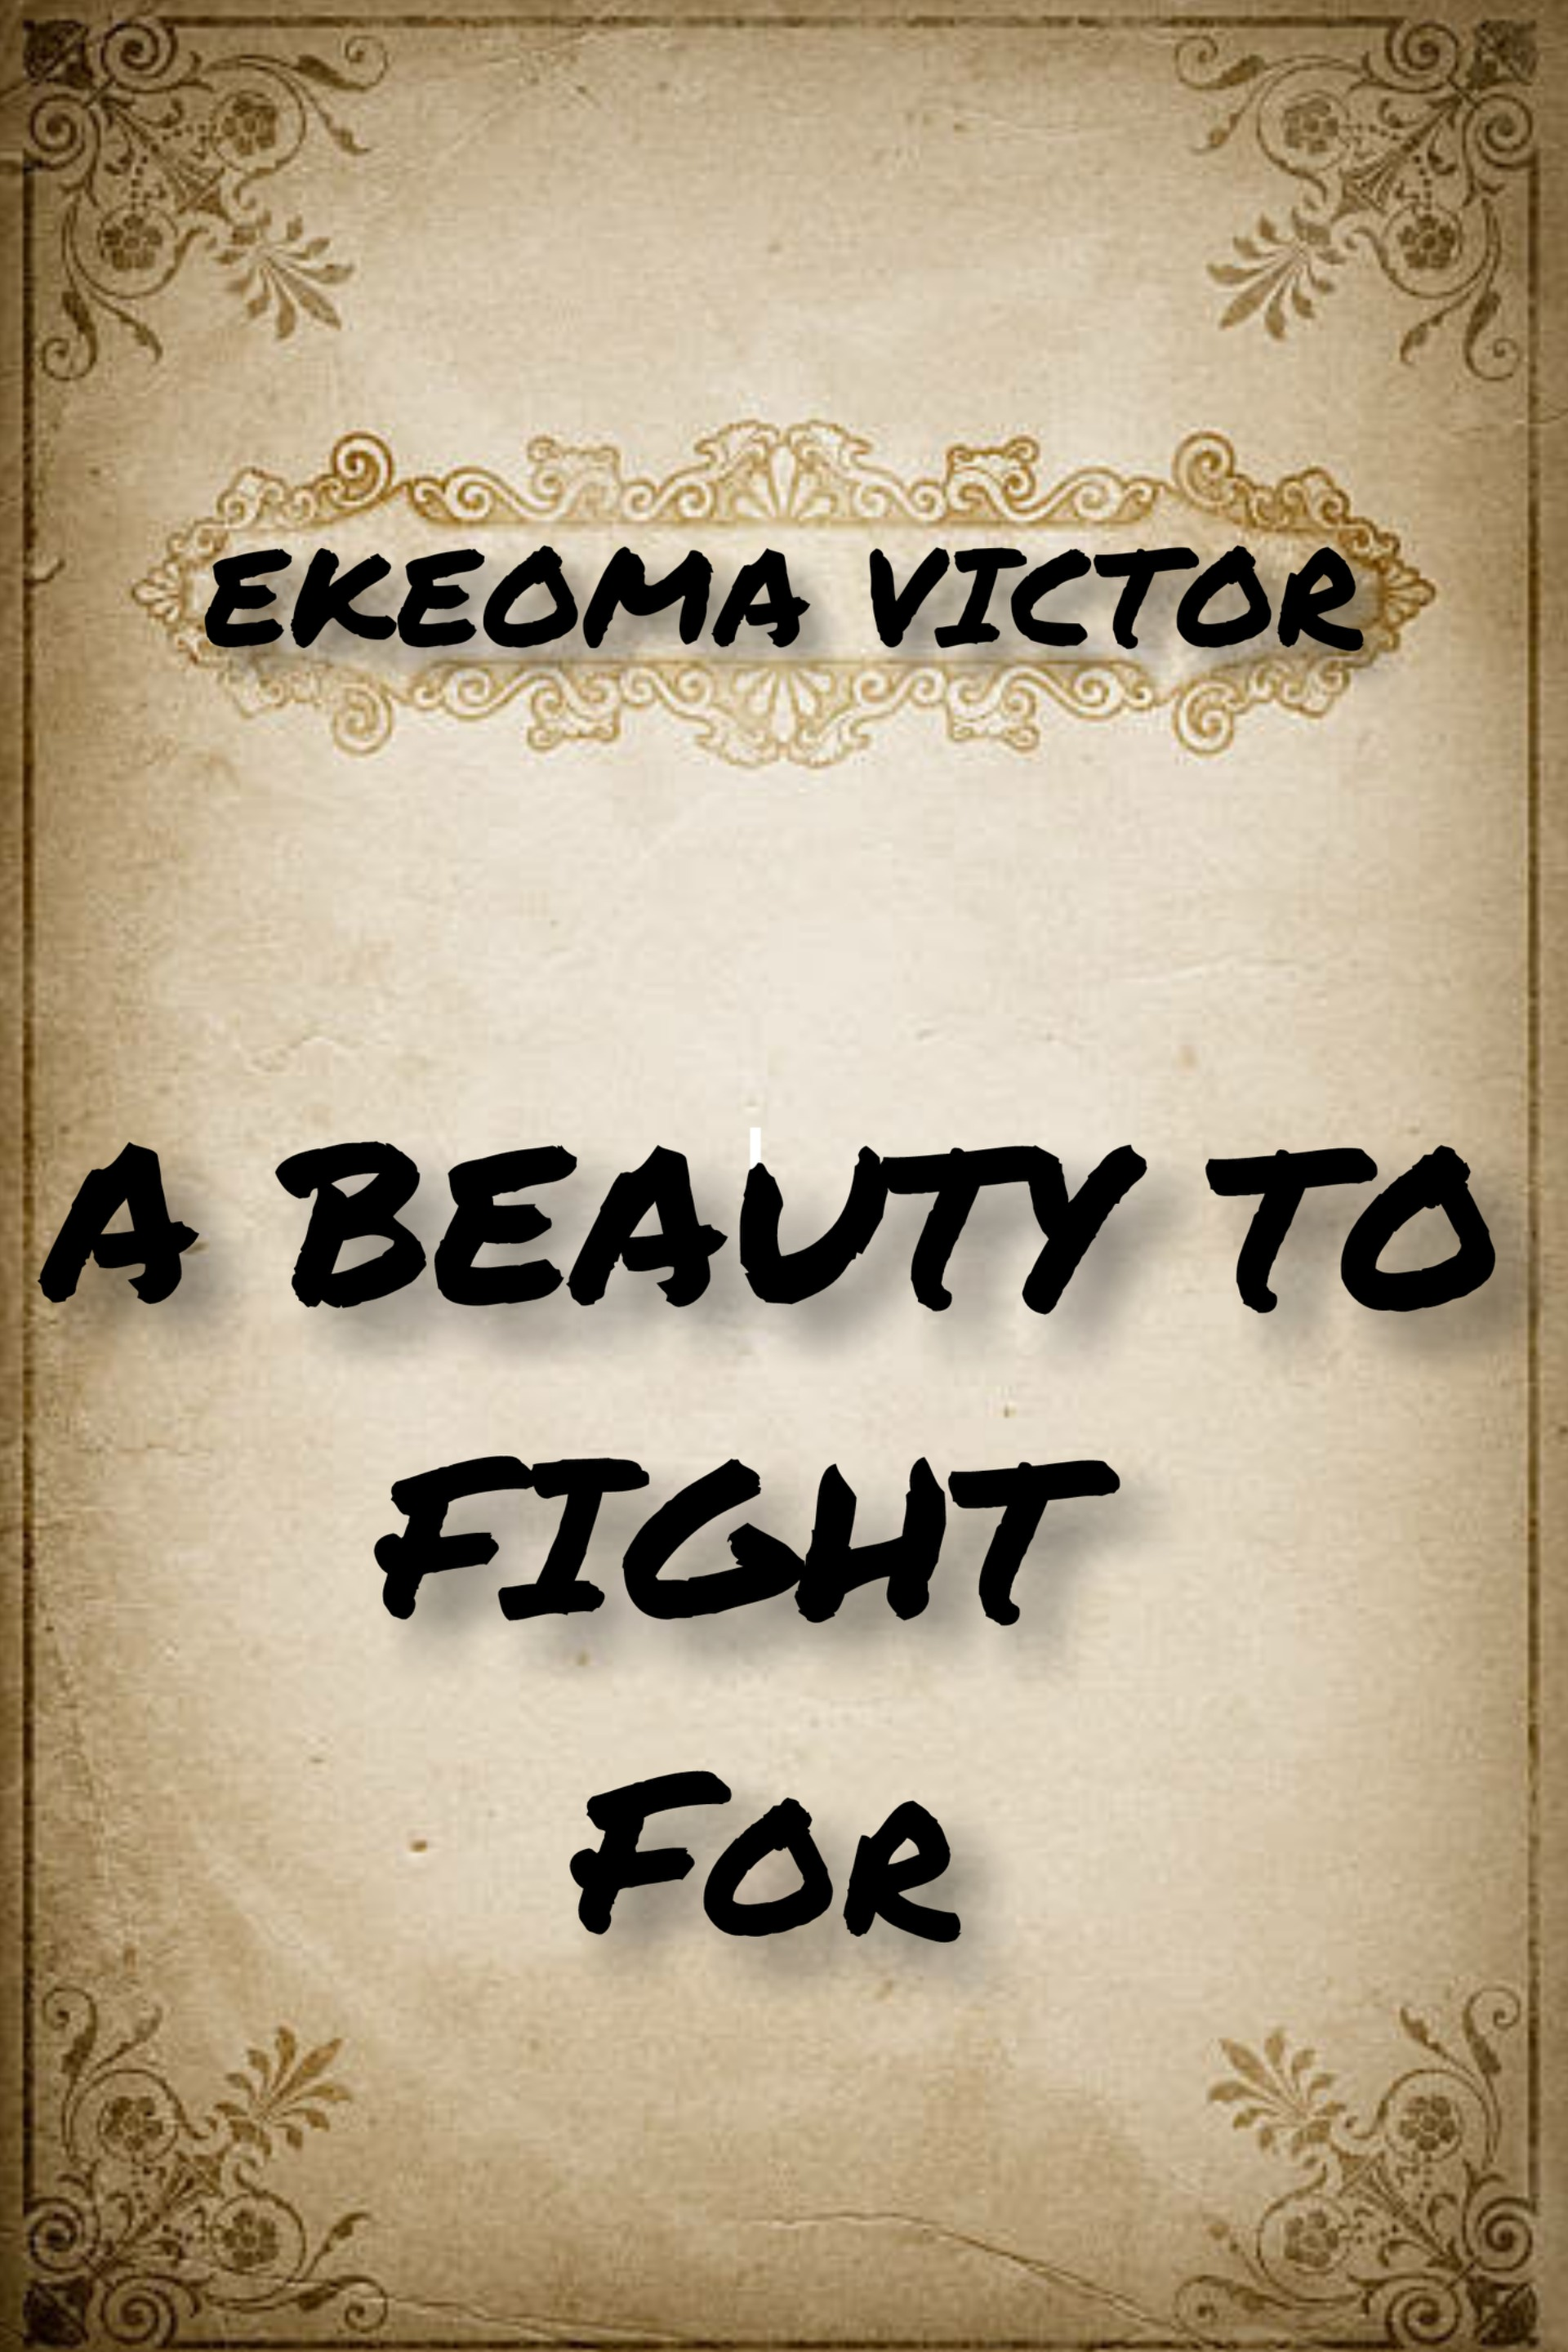 A BEAUTY TO FIGHT FOR